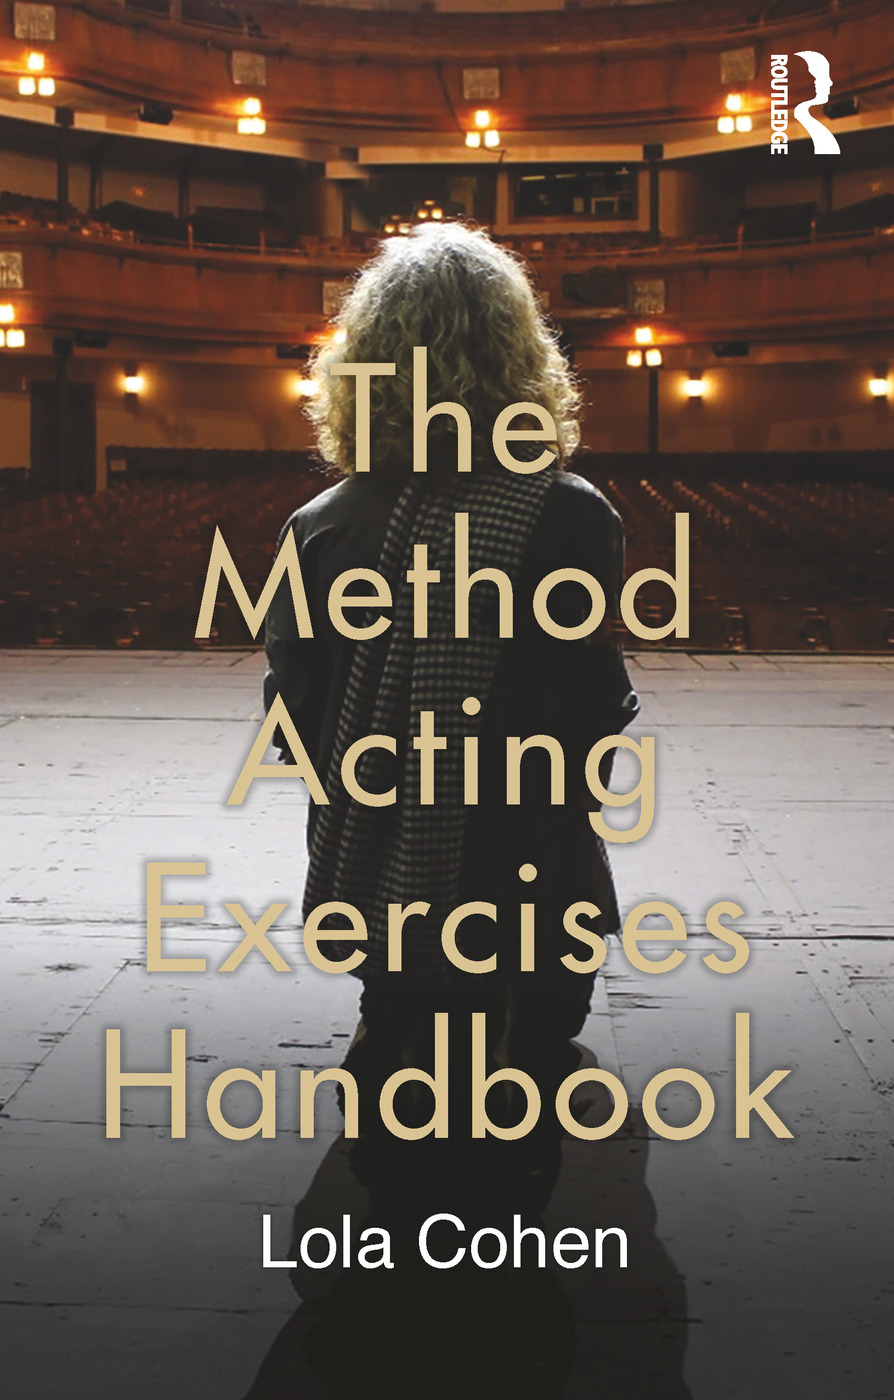 The Method Acting Exercises Handbook book cover